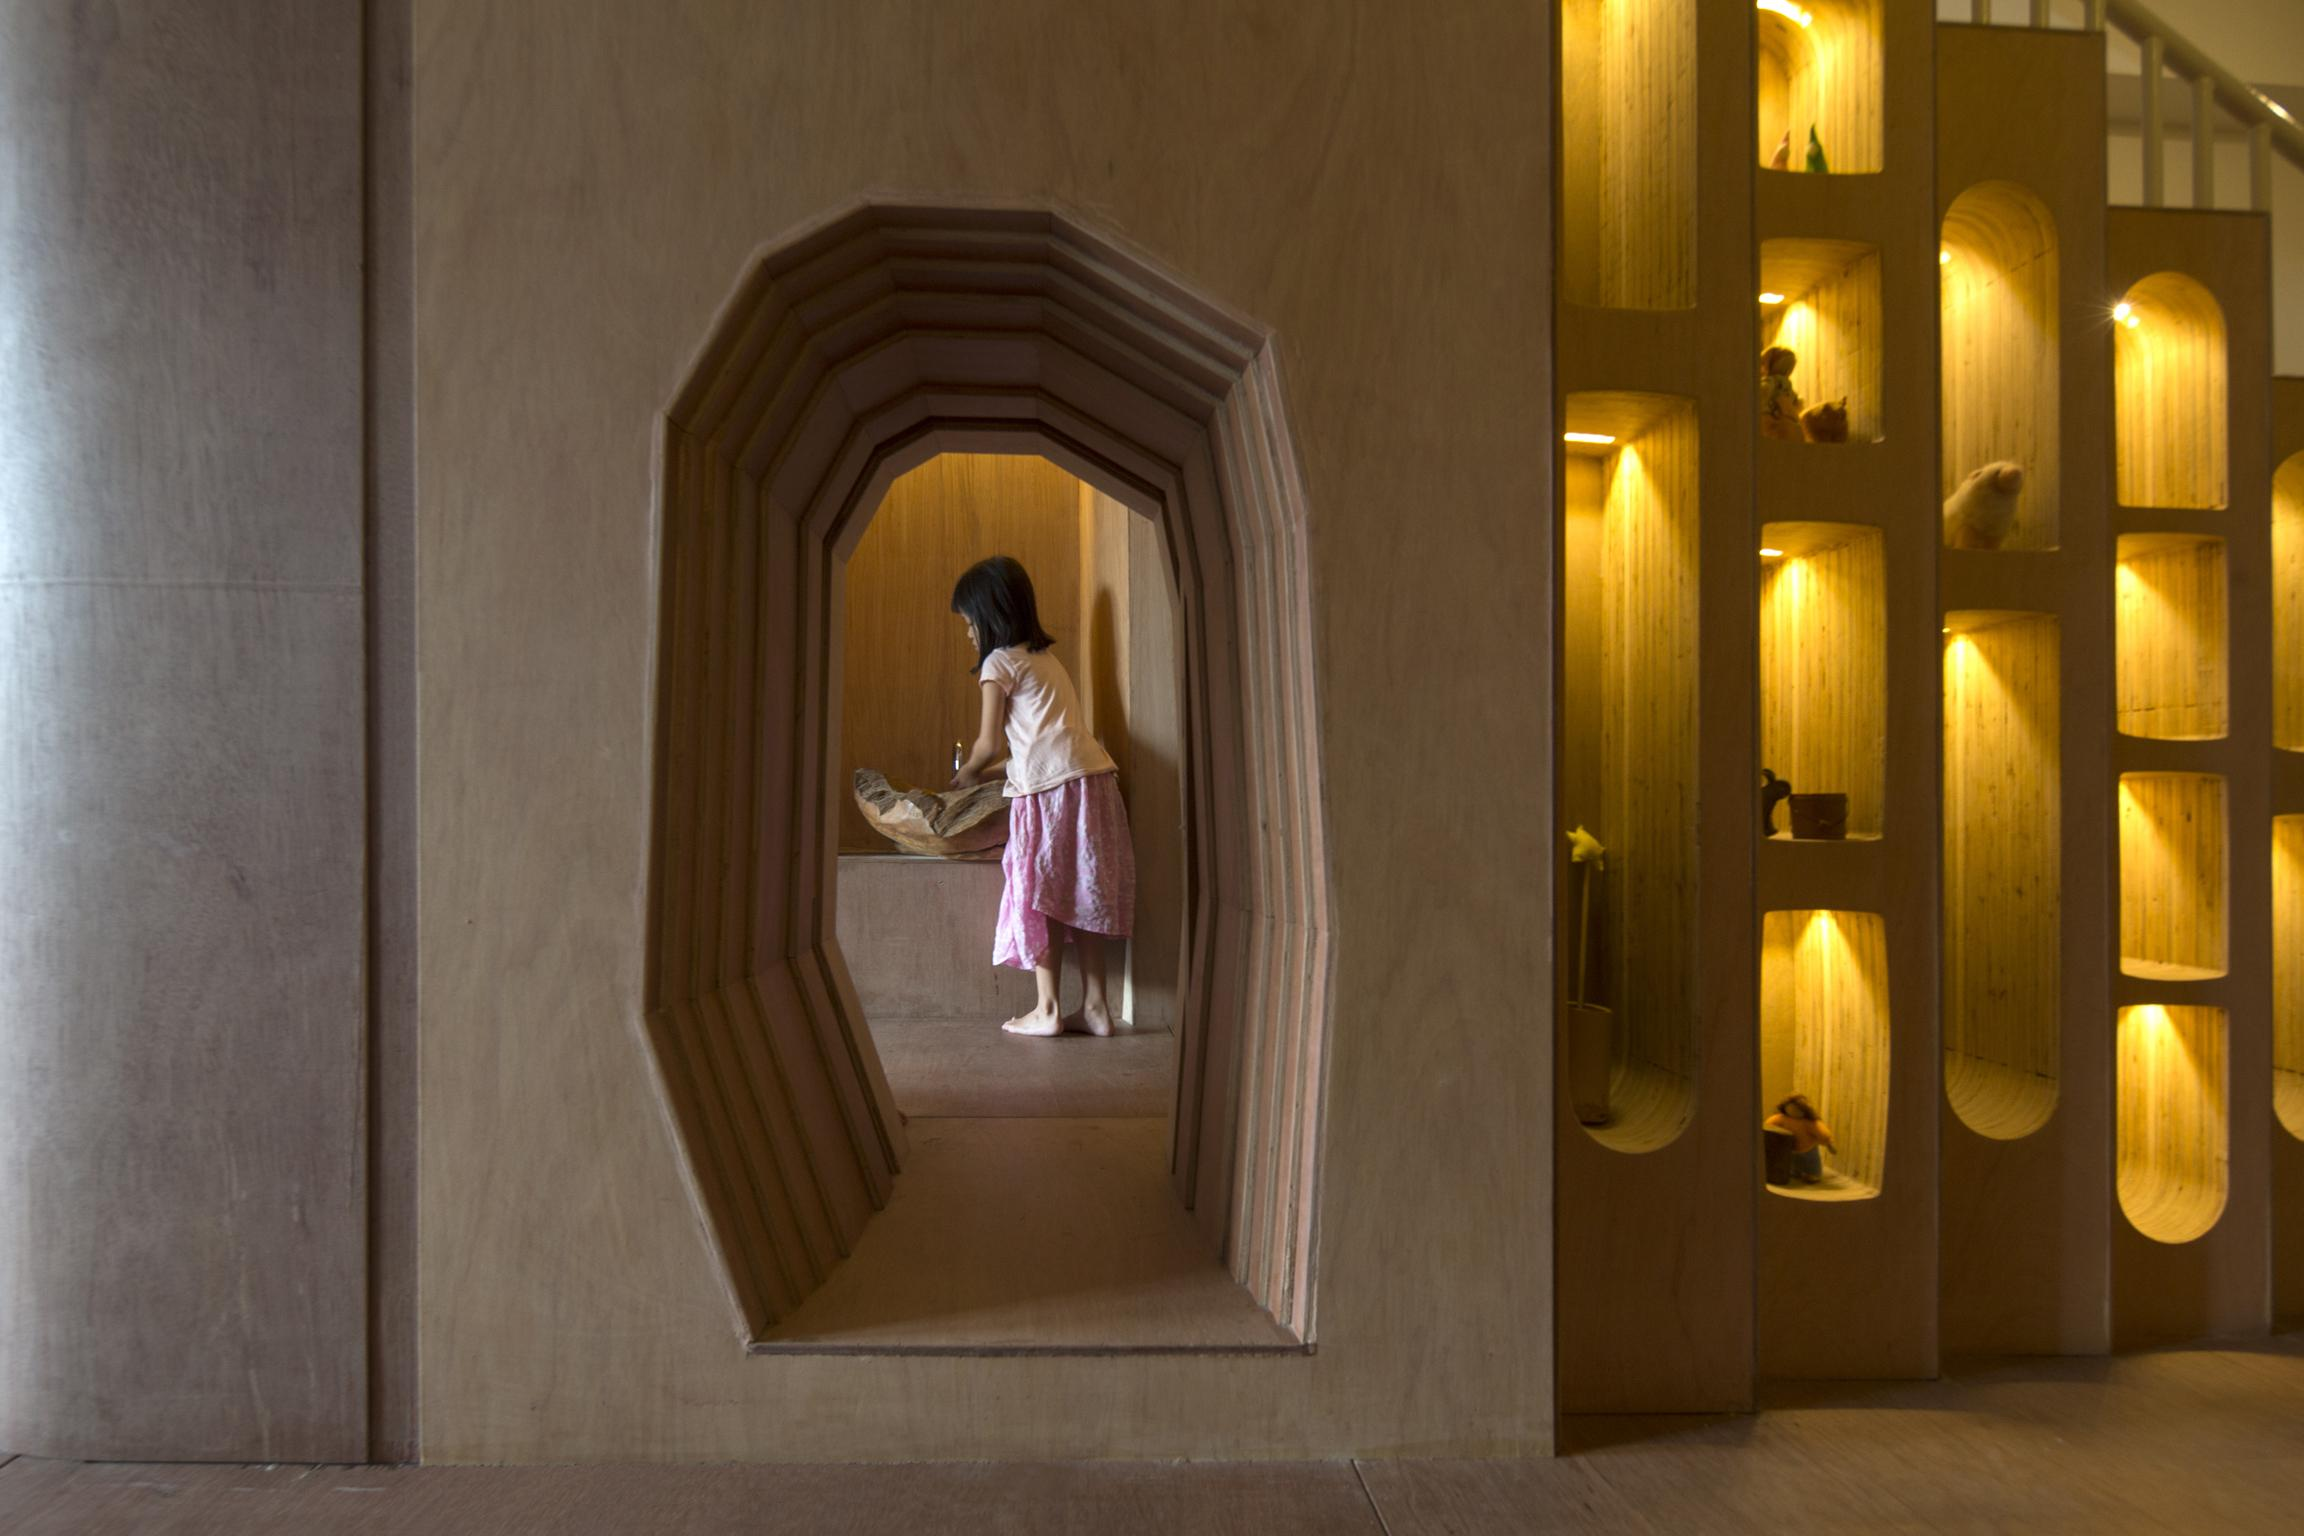 Honorable Mention In Responsive Design Wondrous Light Children's House 05